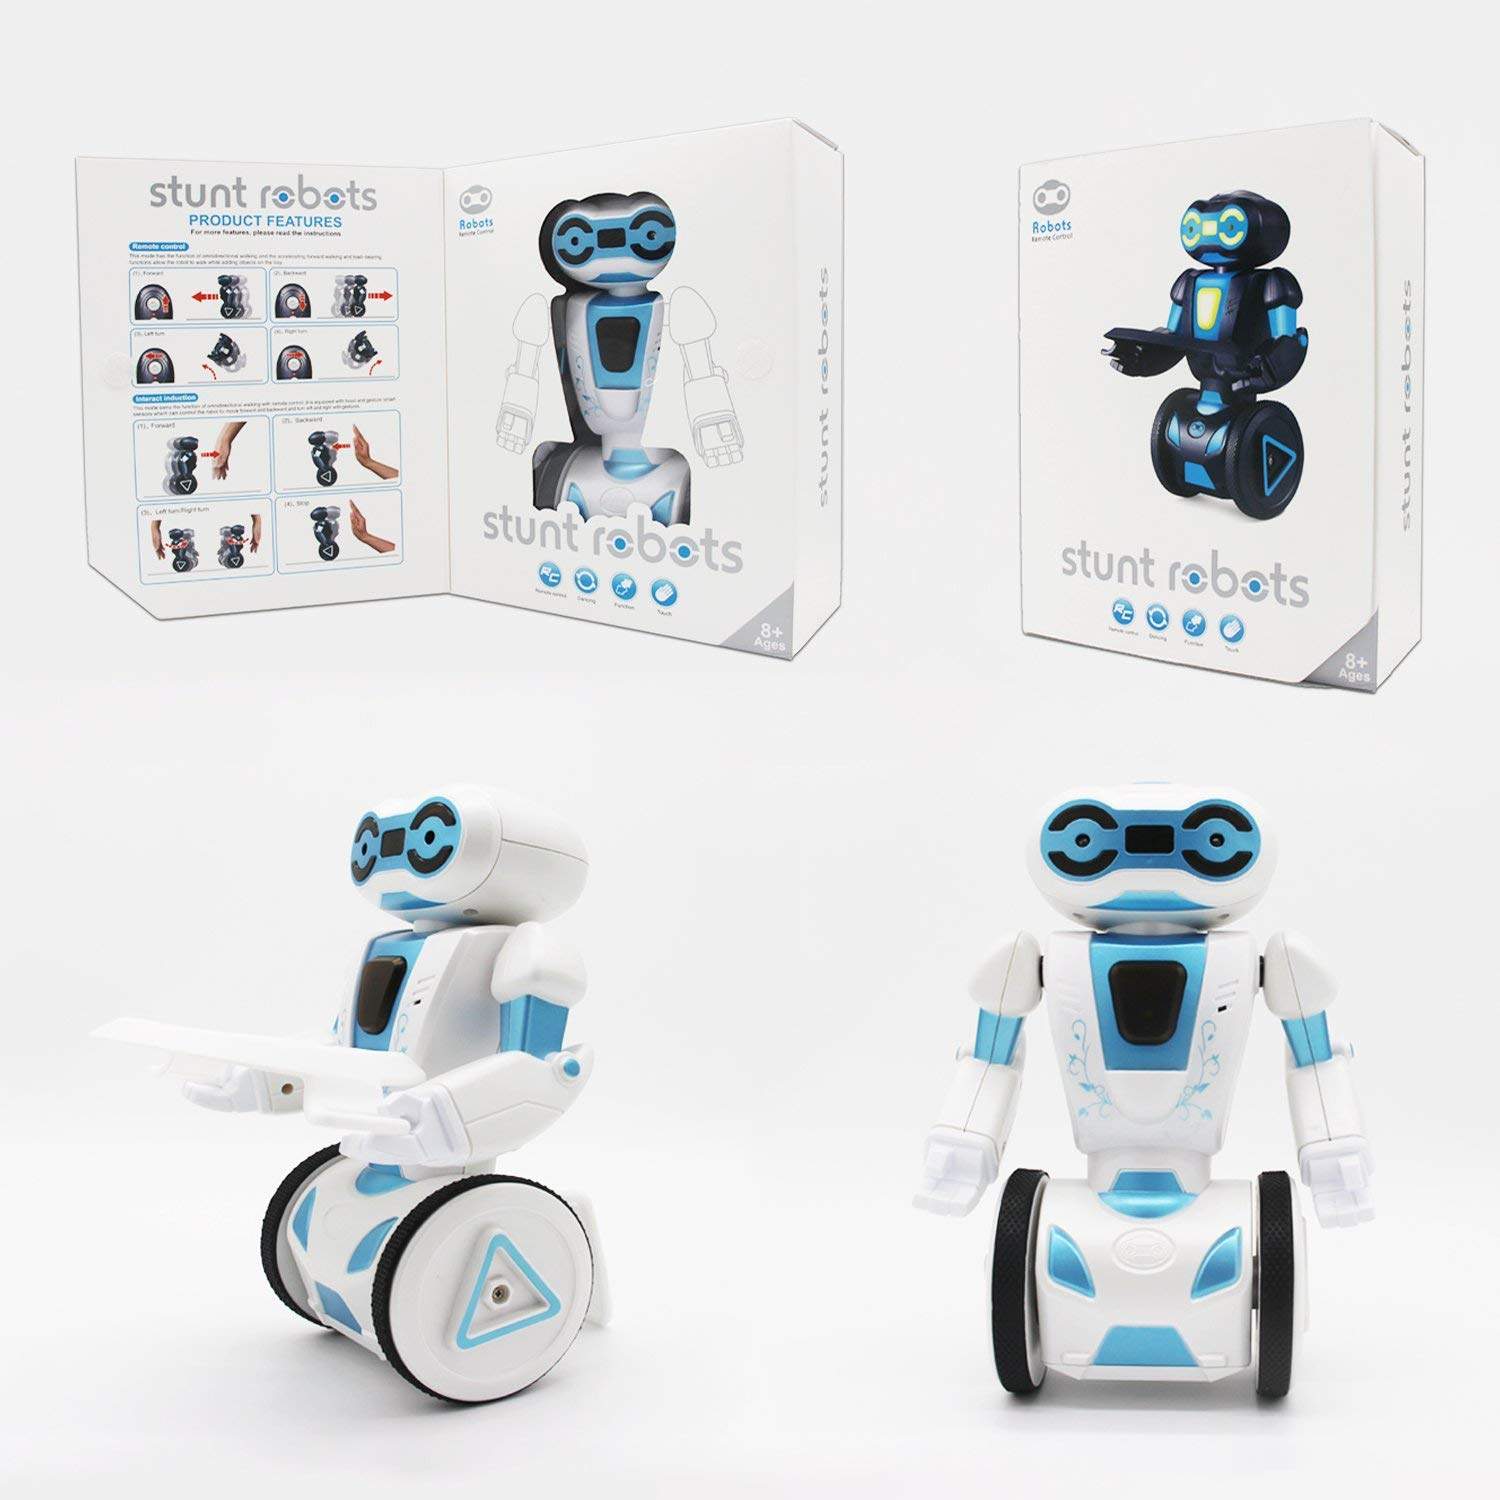 Hi-Tech 2.4GHz Remote Control Robot Smart Toys, 5 Modes Interactive Robot for Kids,Children,Girls, Boys by HI-TECH OPTOELETRONICS CO., LTD. (Image #6)